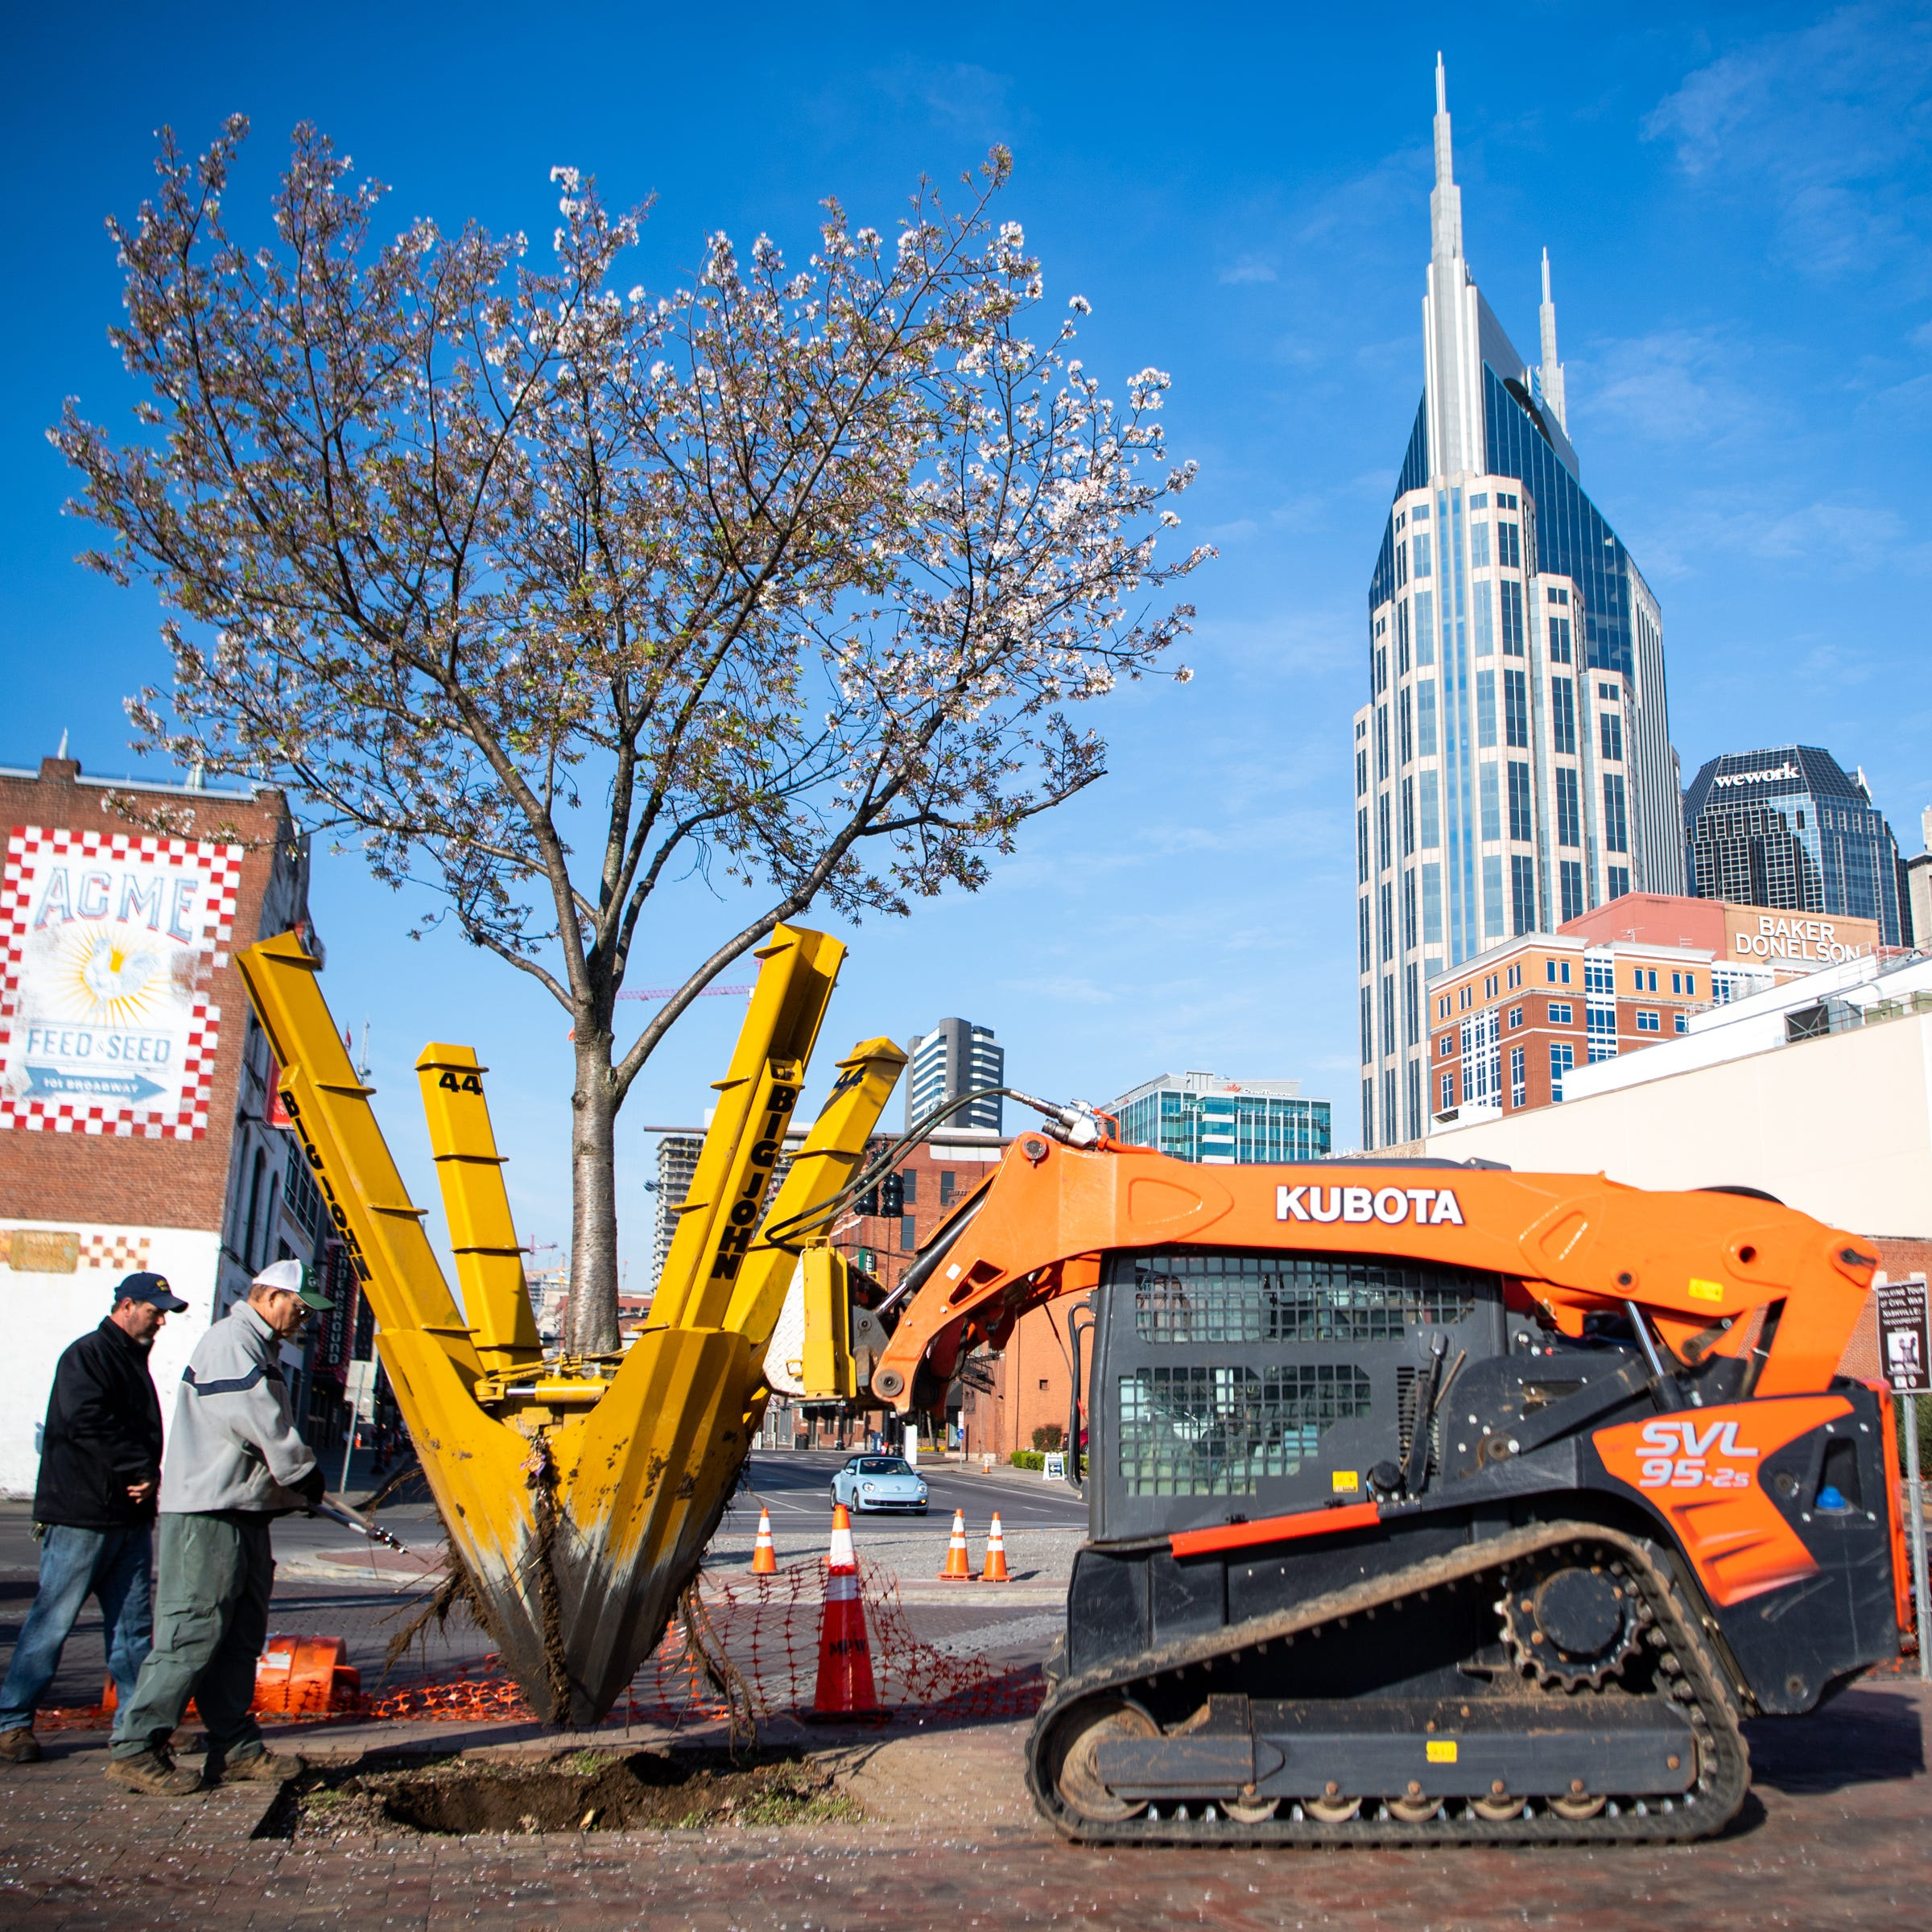 Nashville digs up, replants cherry trees downtown ahead of NFL Draft